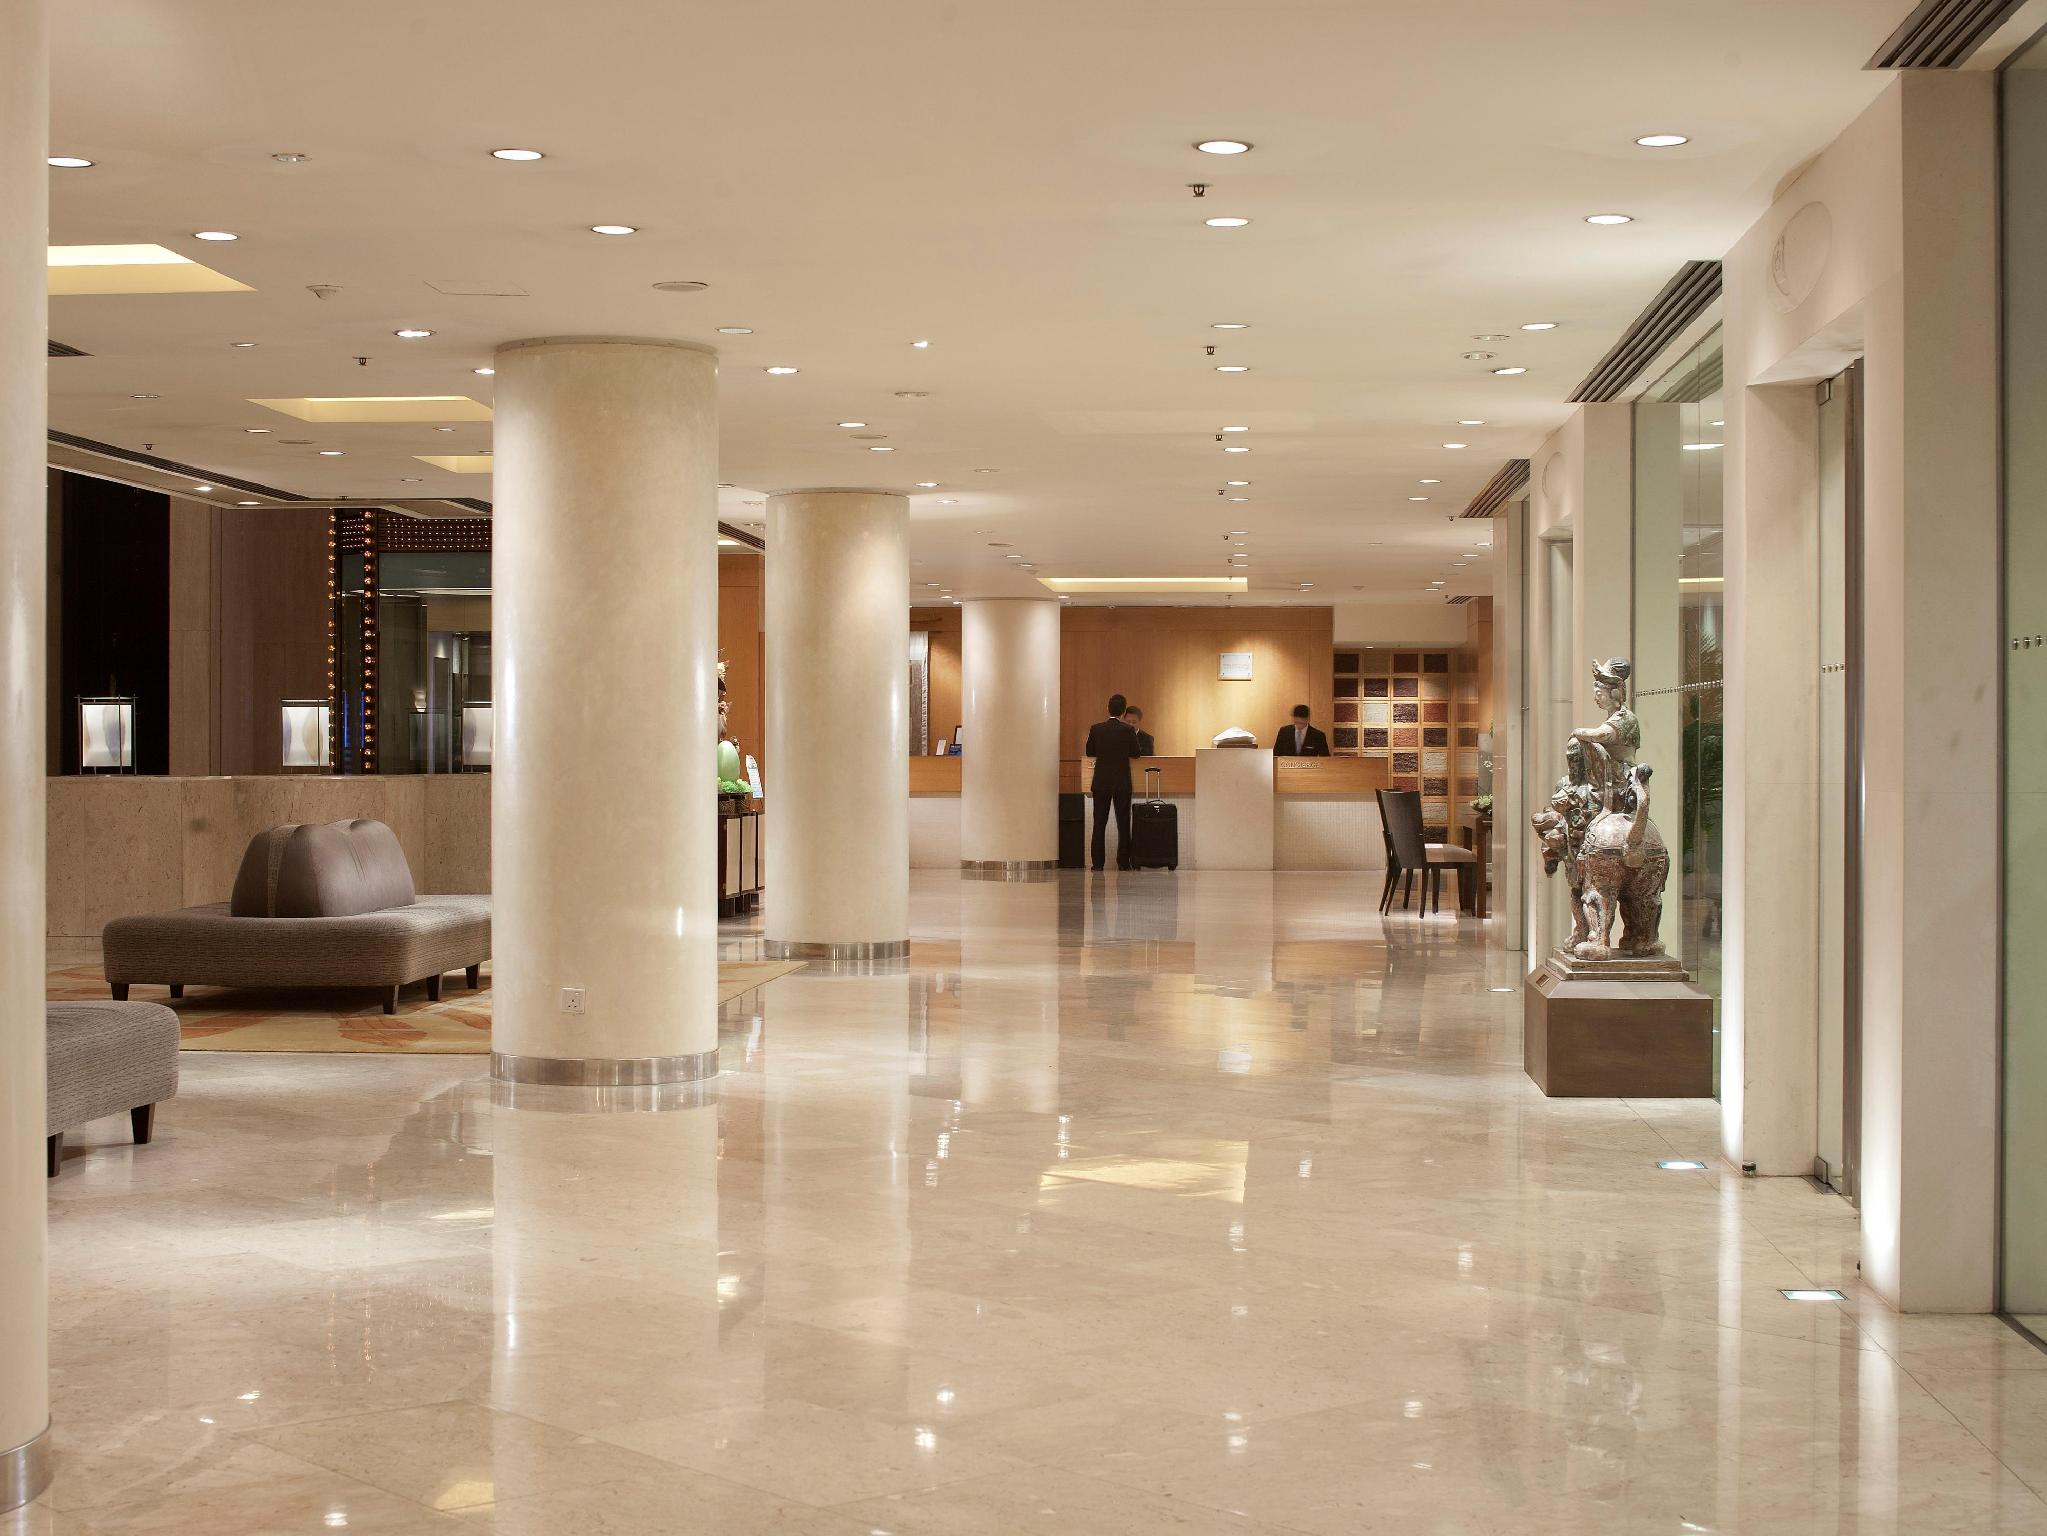 Best Price on Royal Garden Hotel in Hong Kong Reviews